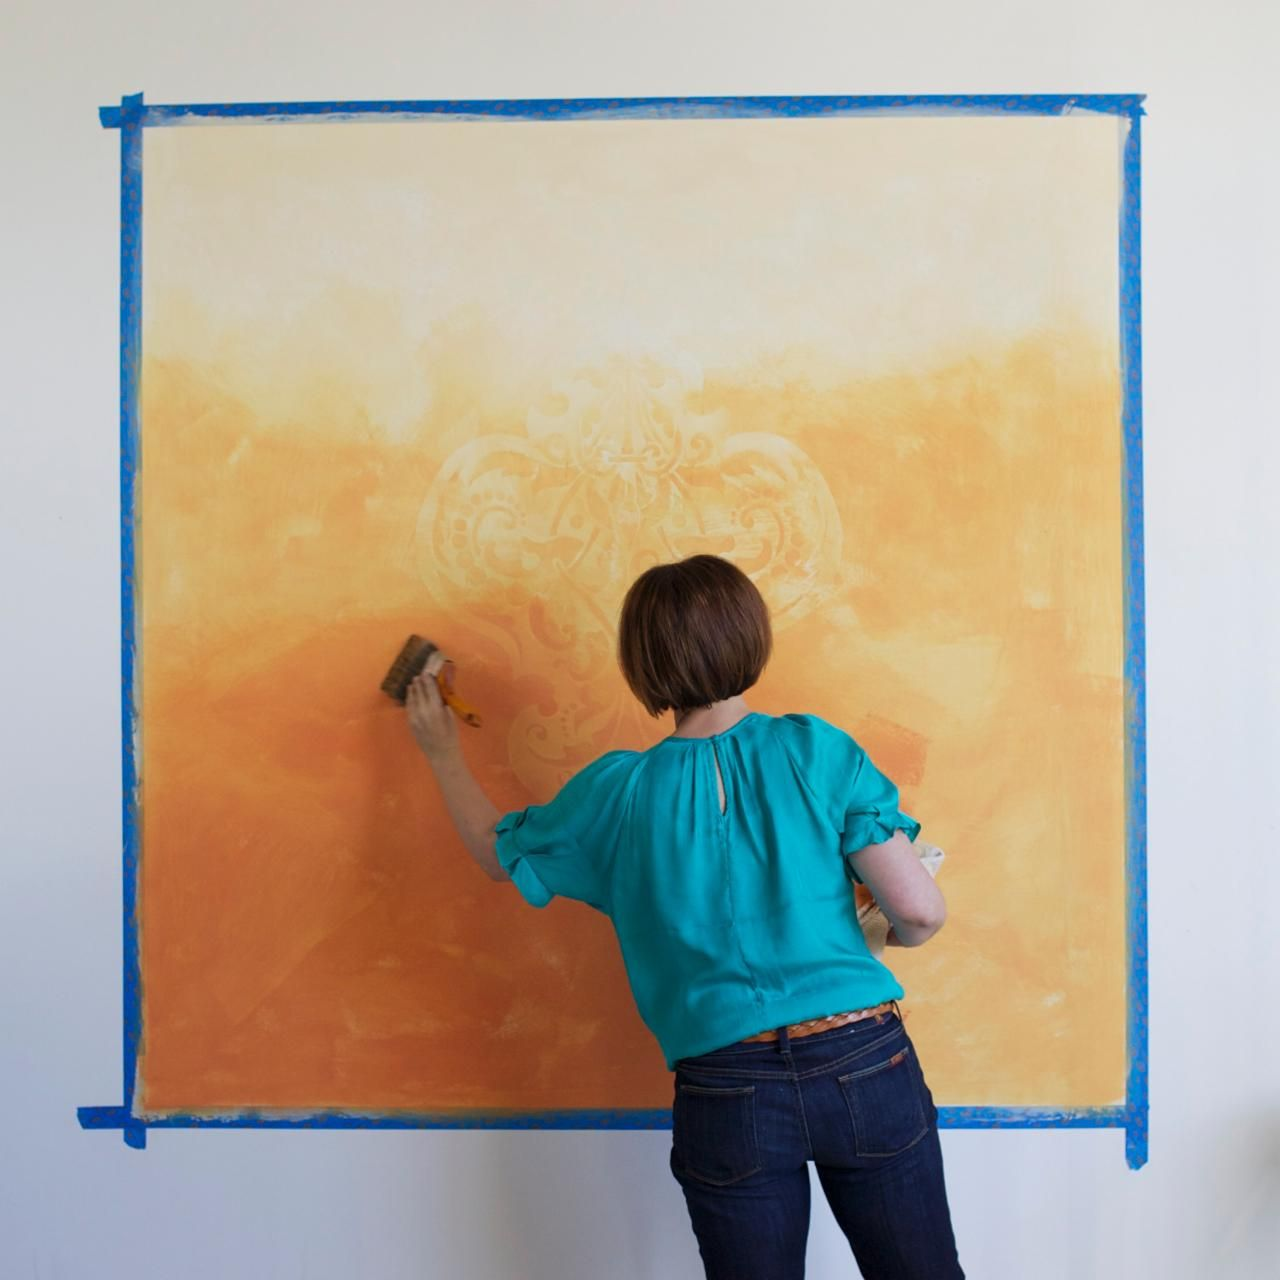 How to Paint an Ombre Stencil Wall Mural | Diy network, Ombre and Walls